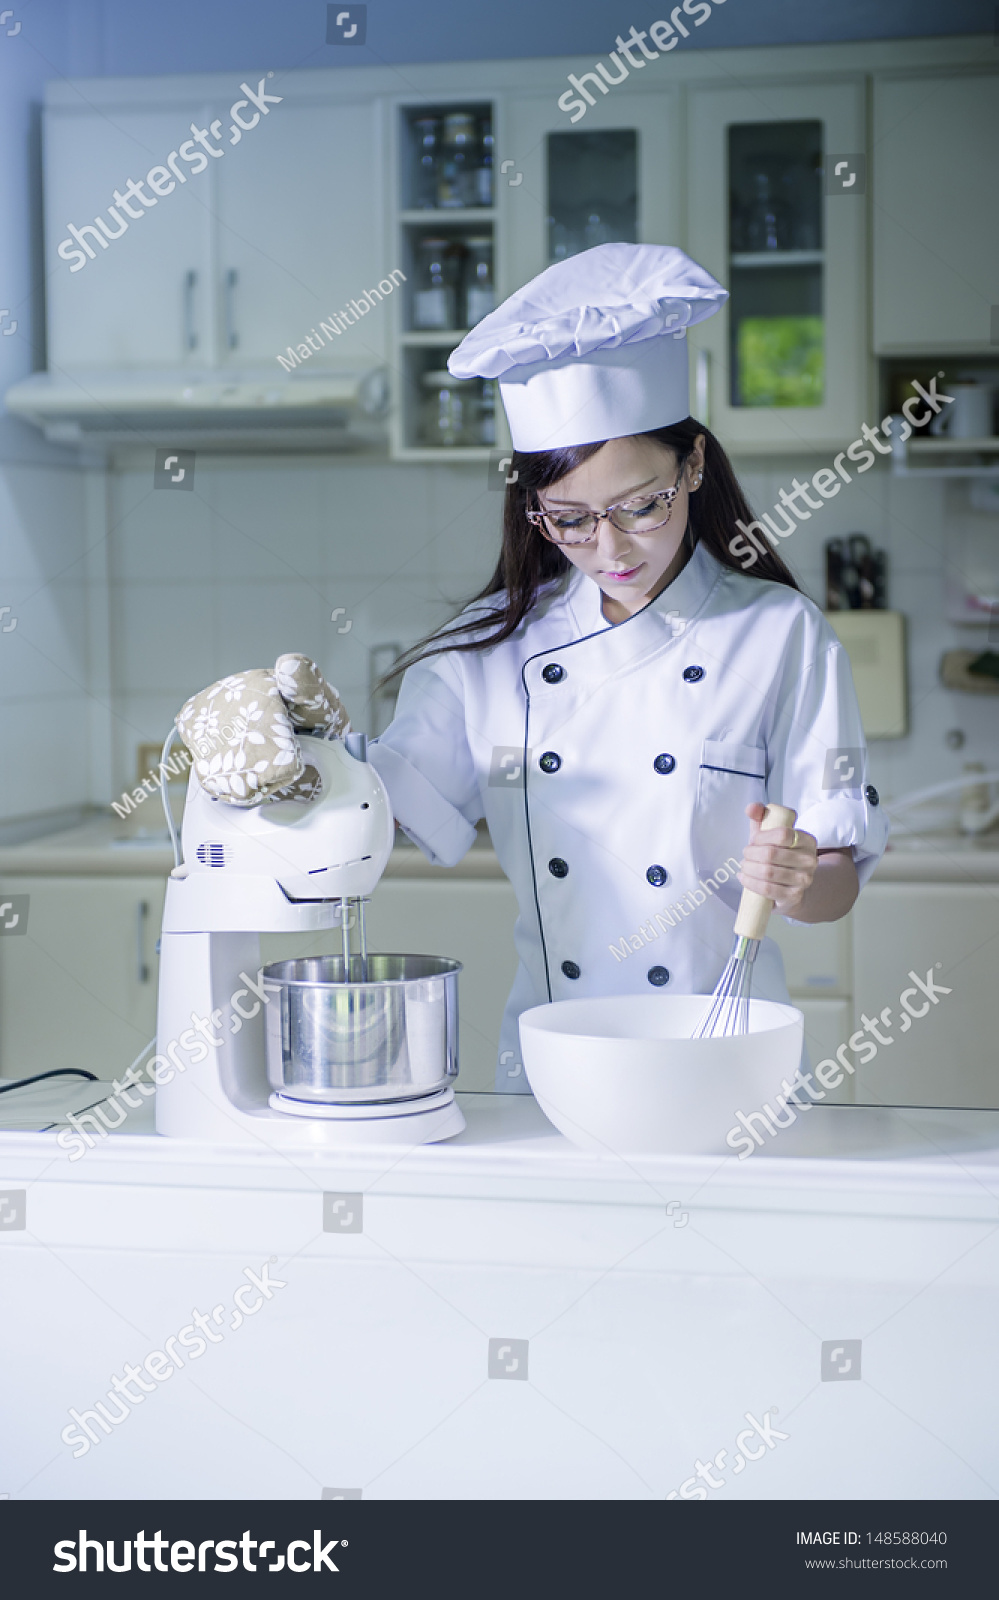 Young Asian Female Amateur Chef Kitchen Stock Photo (Royalty Free ...